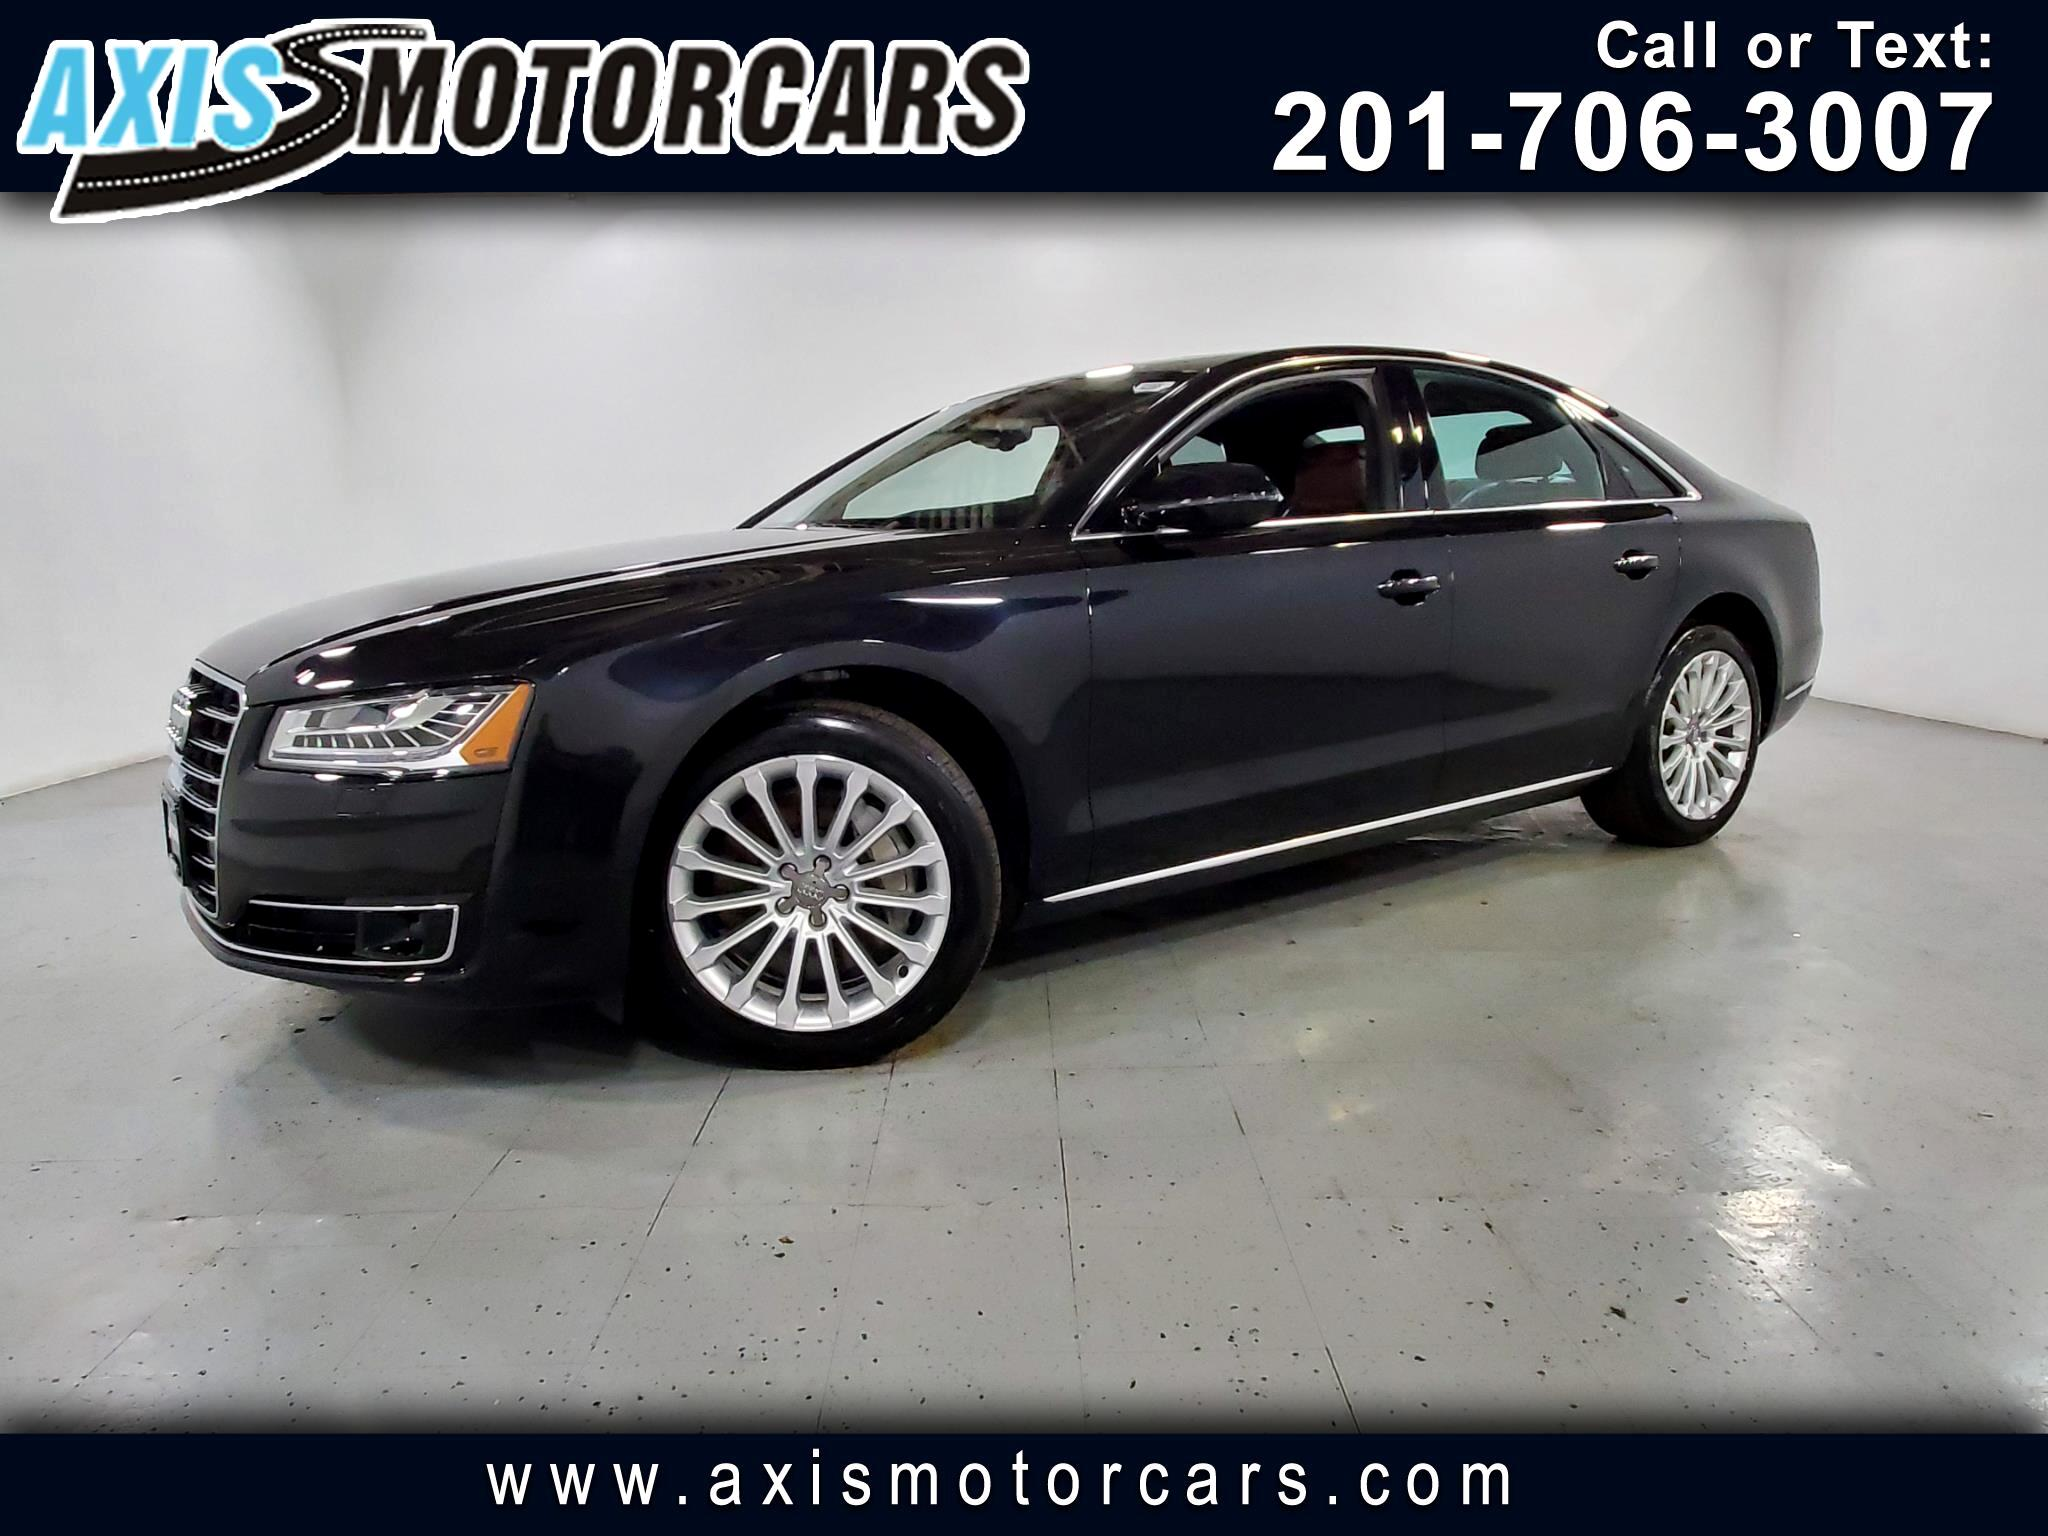 2015 Audi A8 w/Bose Sound Navigation Backup Camera 360